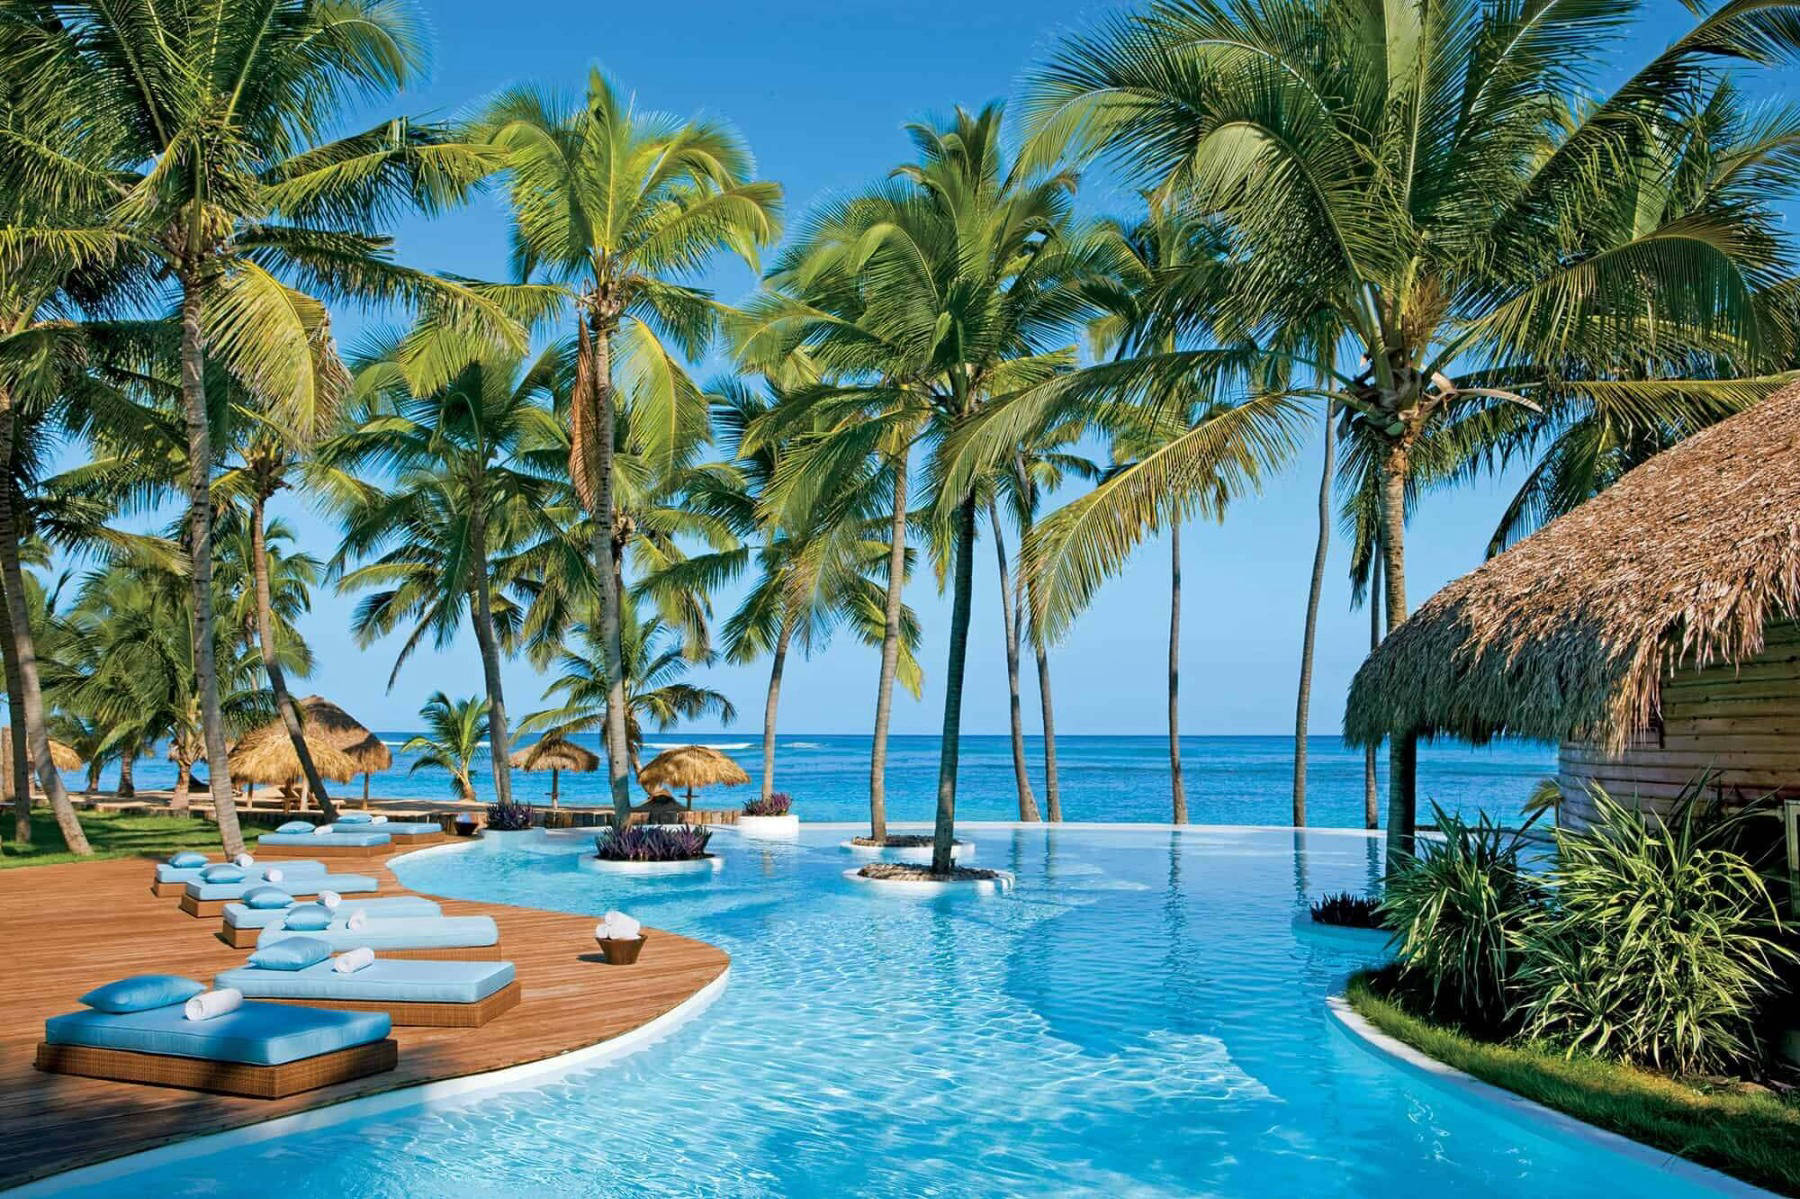 Hotel resort pool with palm trees